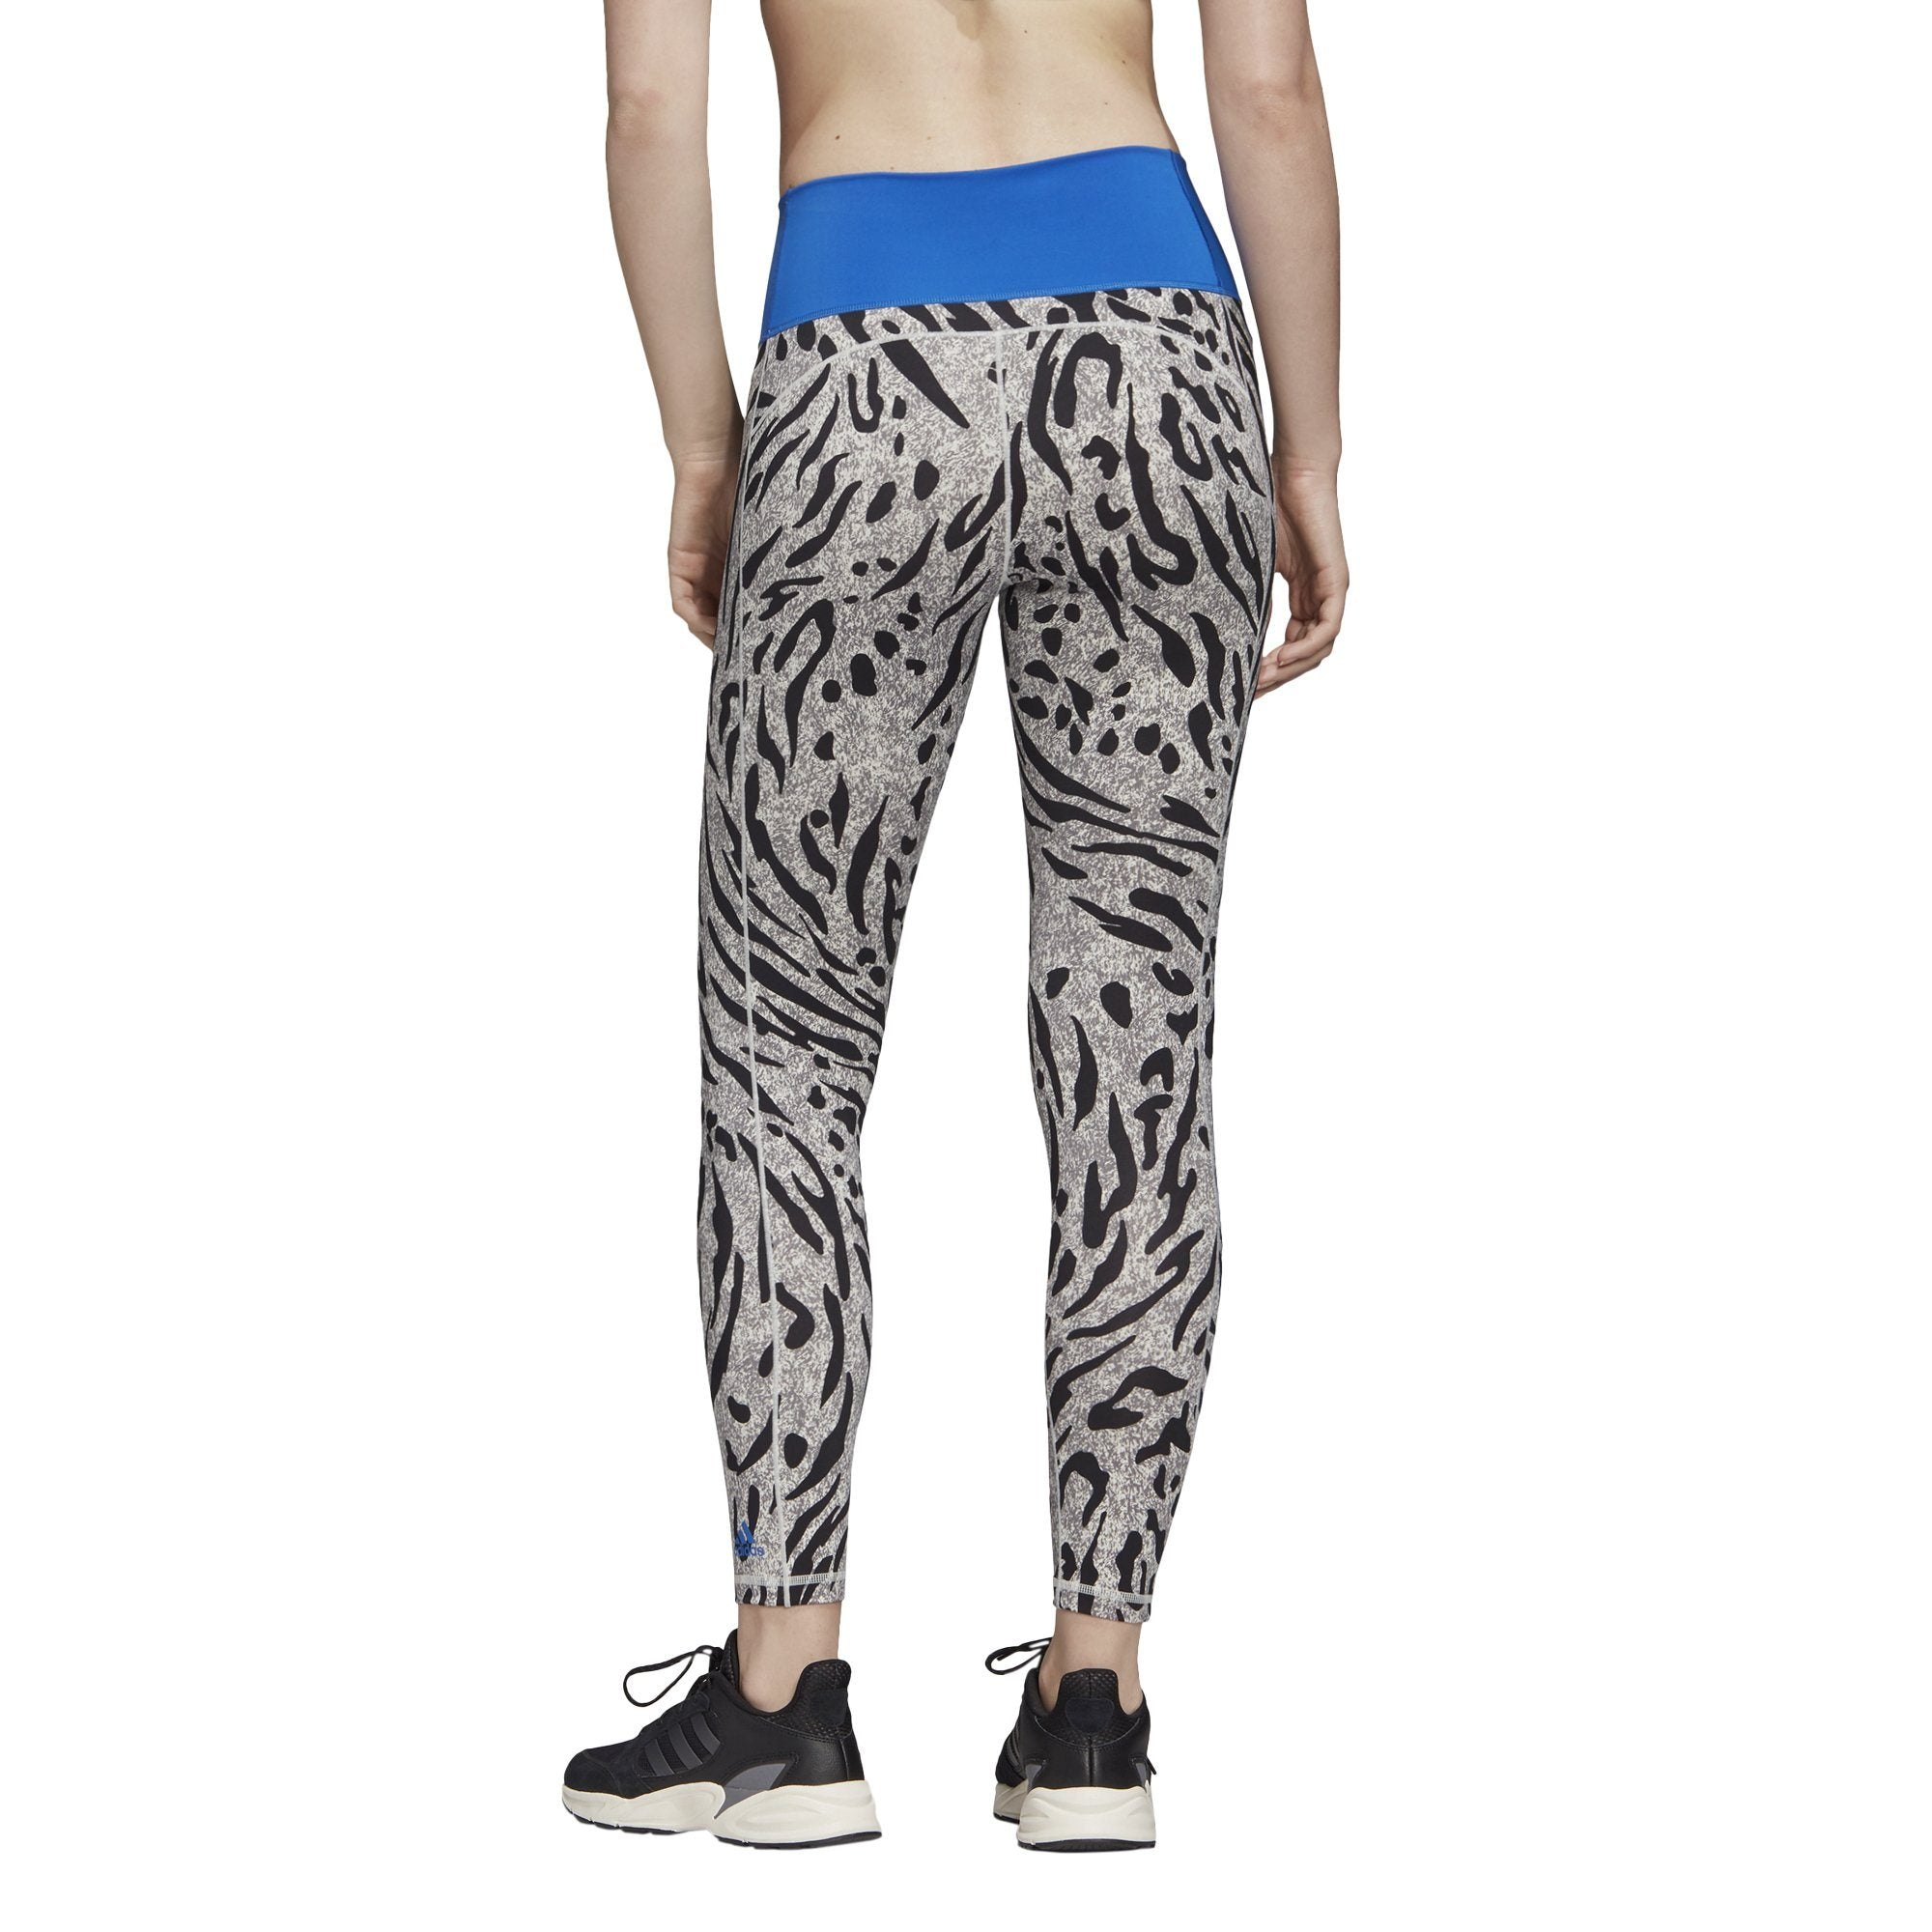 Adidas Womens Believe This 2.0 Iterations High-Rise 7/8 Tights - Grey Four F17/Print SP-ApparelTights-Womens Adidas